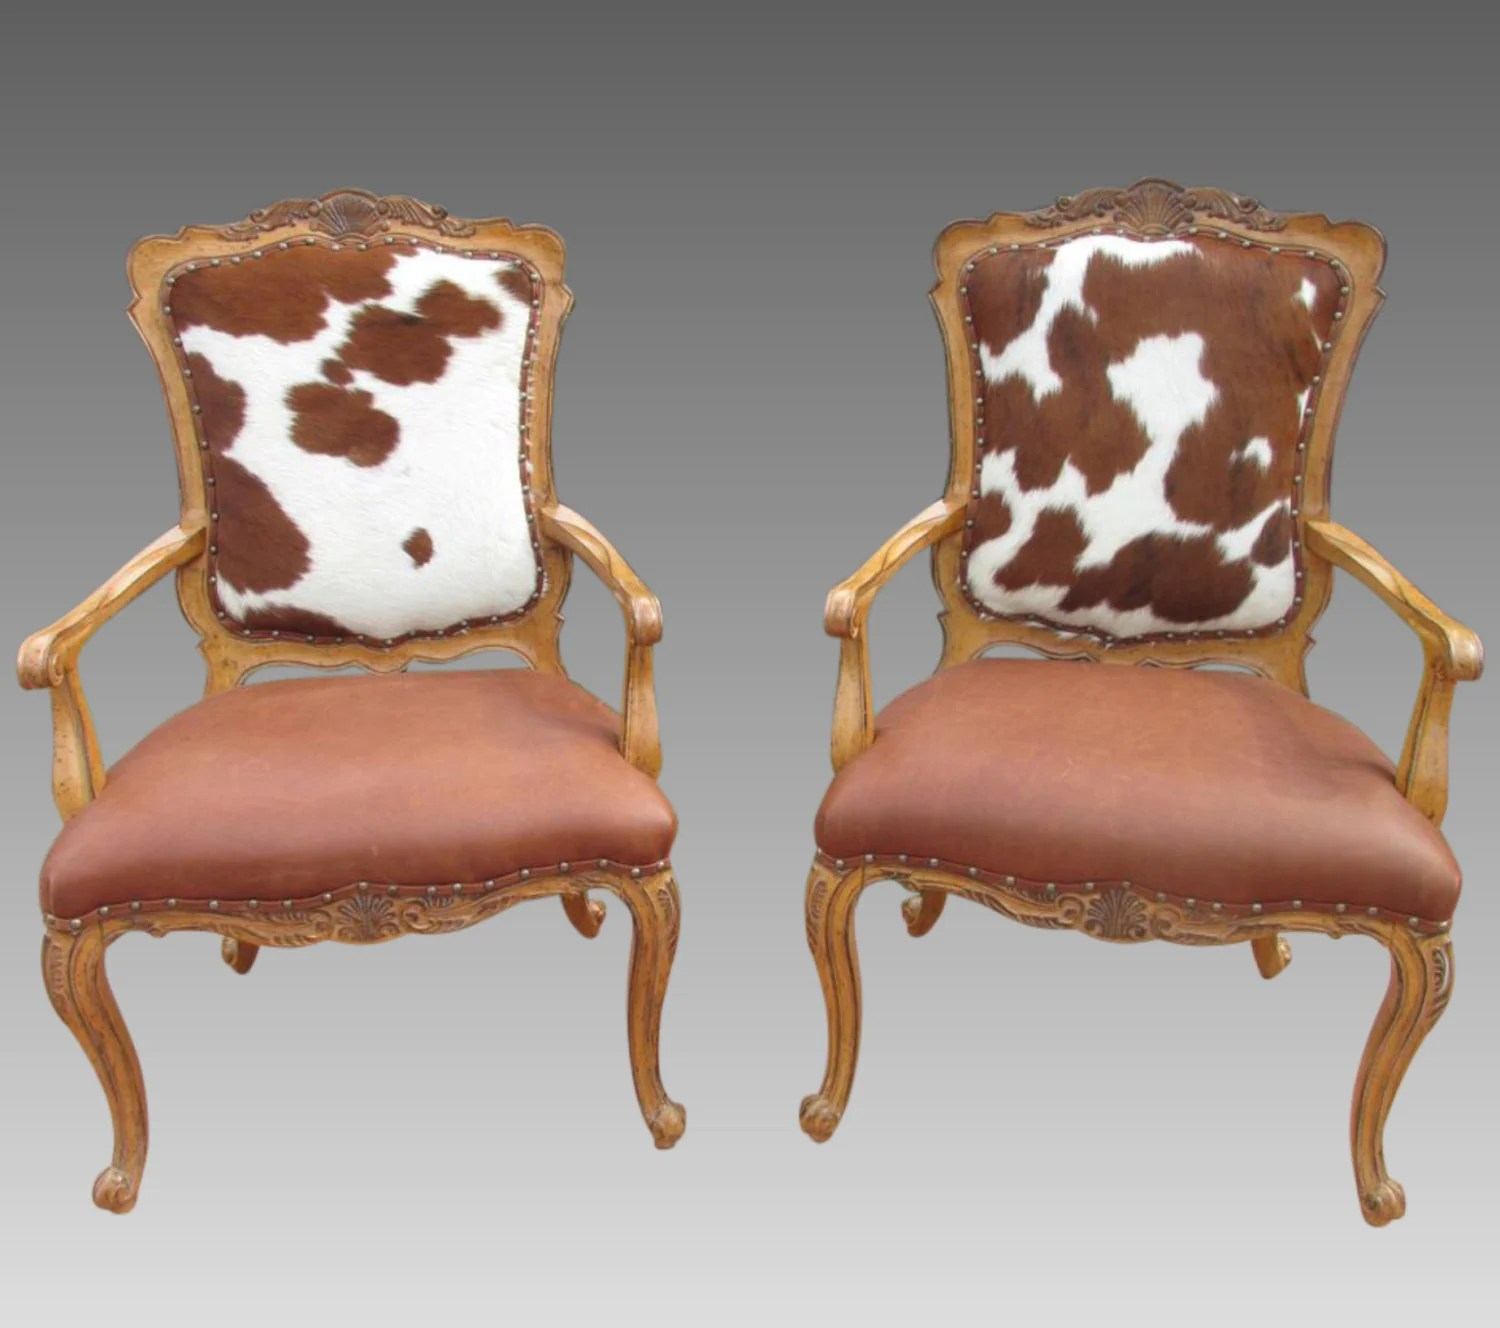 cowhide print accent chair spider web target chairs hair on hide fire side pair